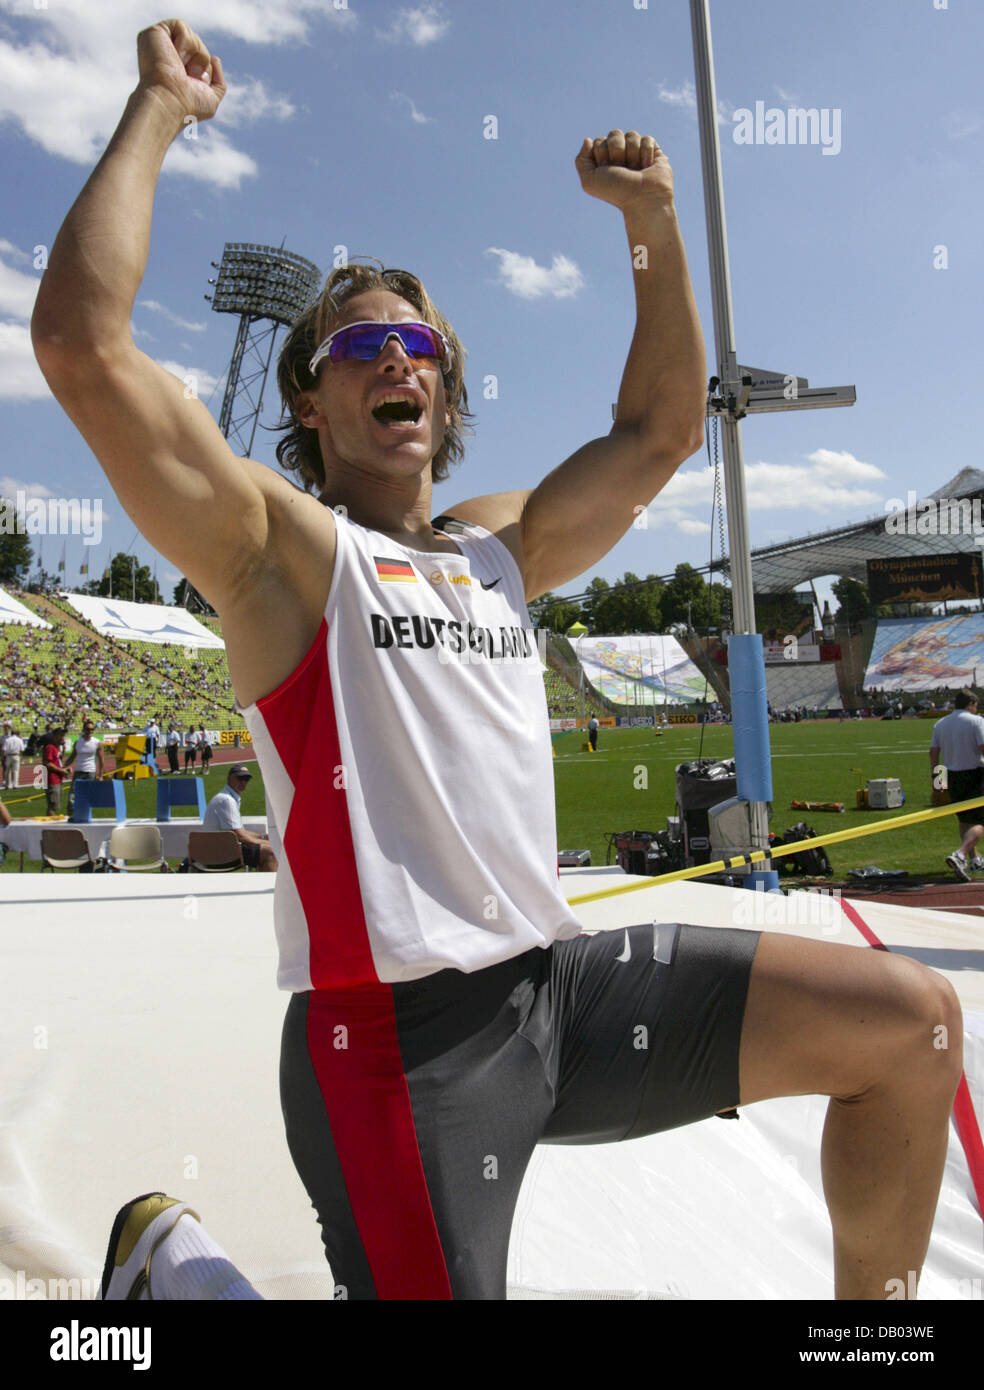 German pole-vaulter Tim Lobinger cheers after a jump over 5.70m which earned him the first place at the SPAR European - Stock Image